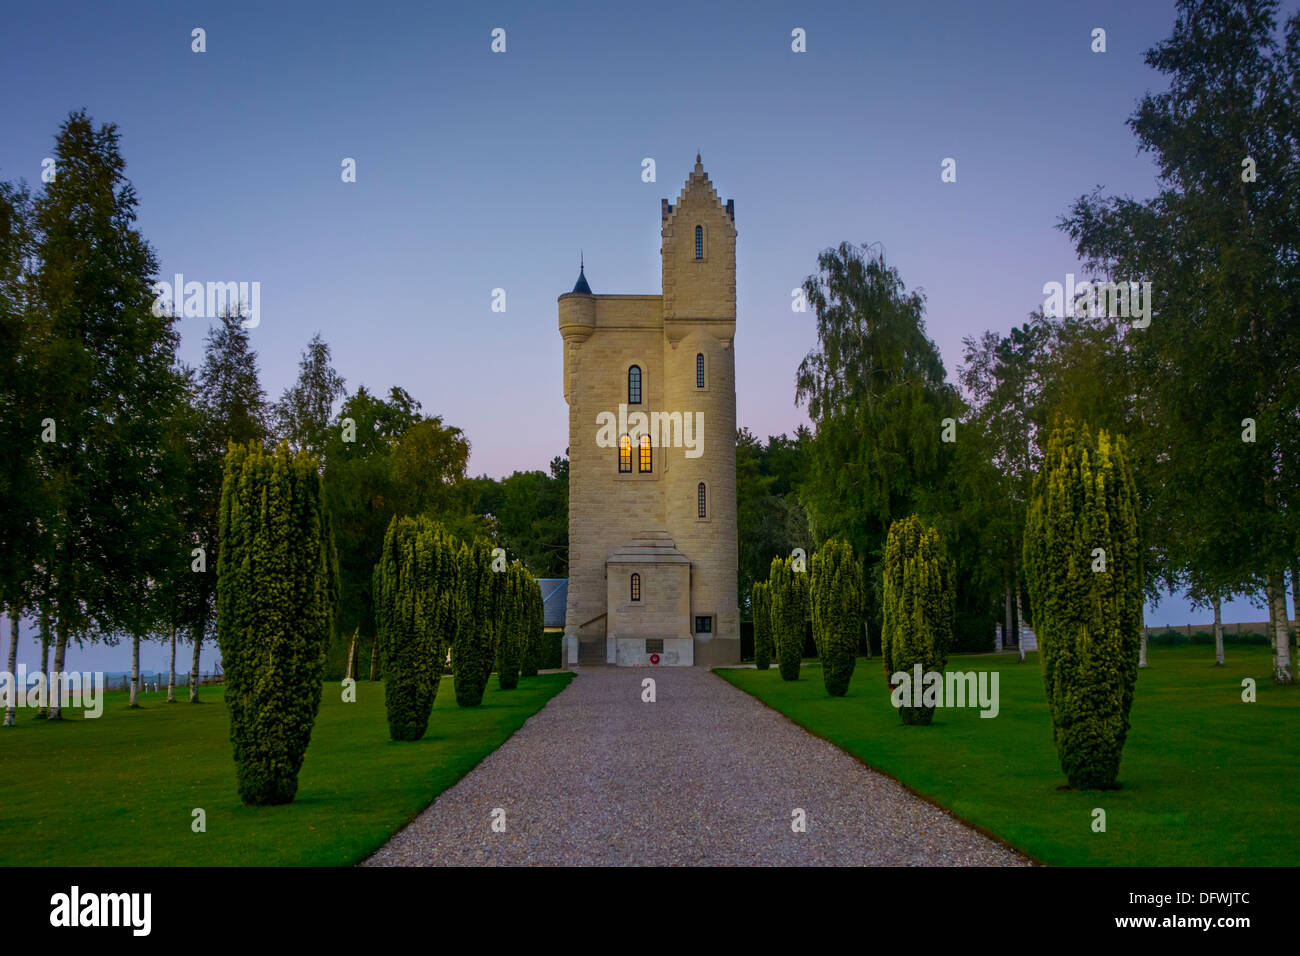 Ulster Tower, Irish First World War One memorial to the men of the 36th Ulster Division at Thiepval, Battle of the - Stock Image